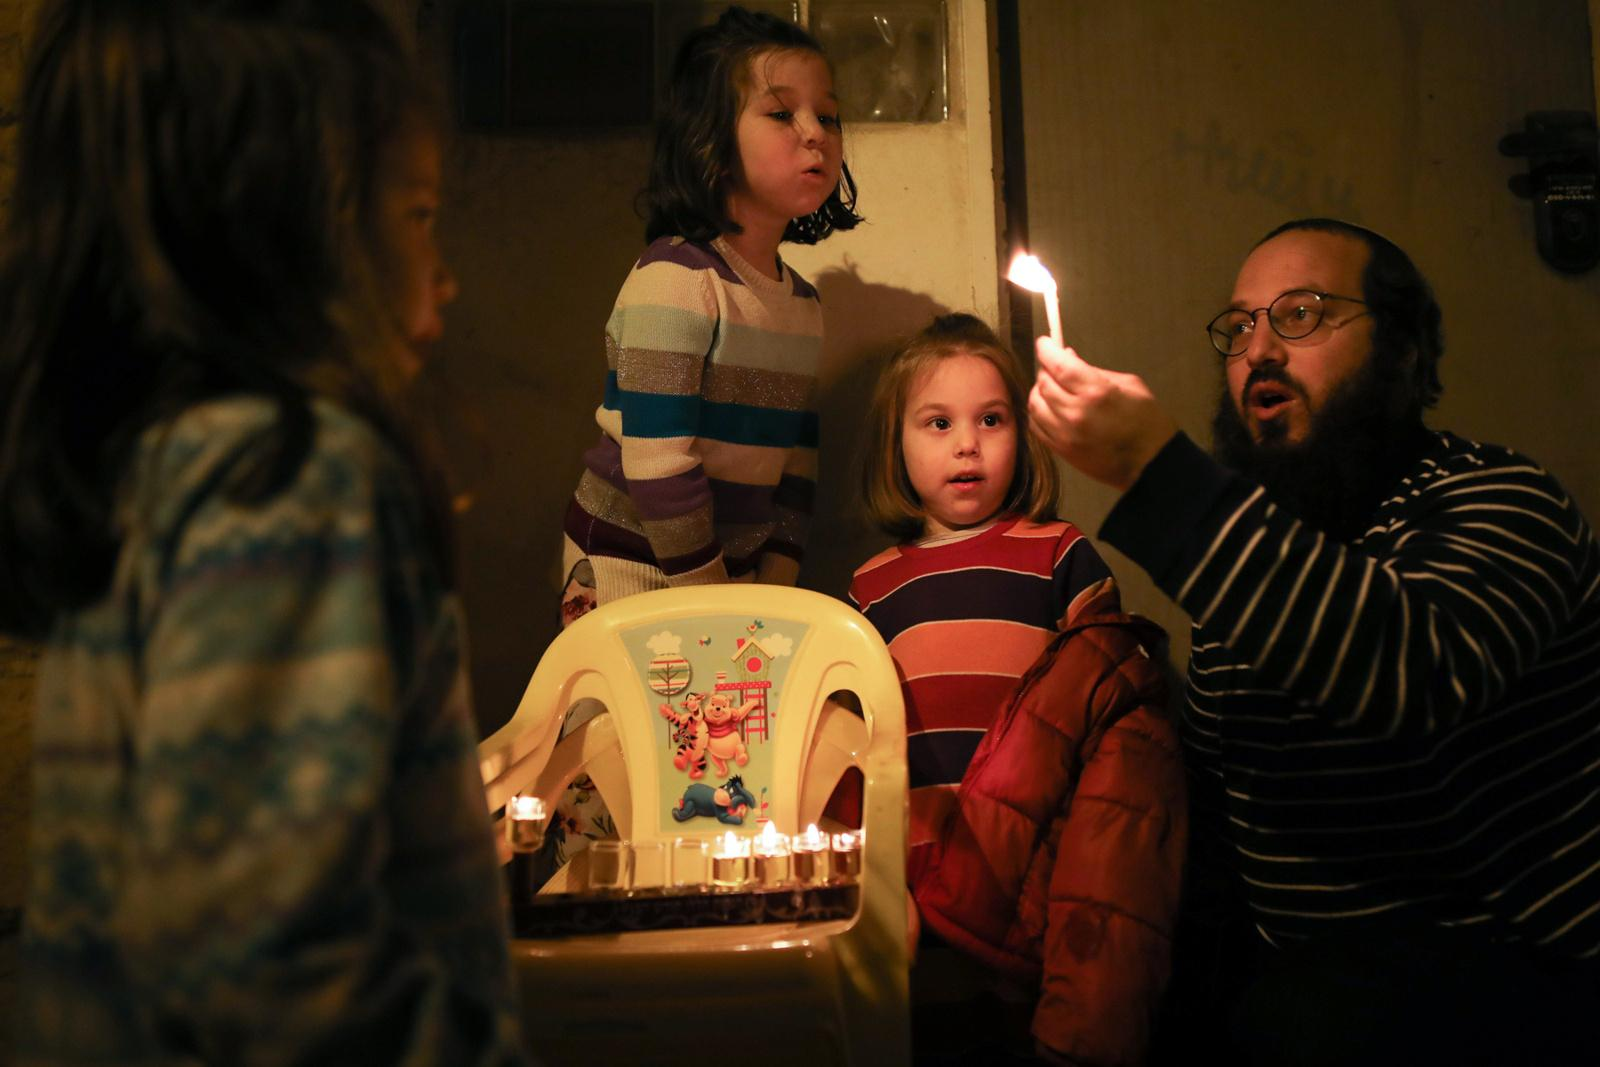 An ultra-orthodox Jewish family lights candles at their home on the fourth night of the holiday of Hanukkah in Jerusalem's Nachlaot neighourhood, Israel, December 05, 2018